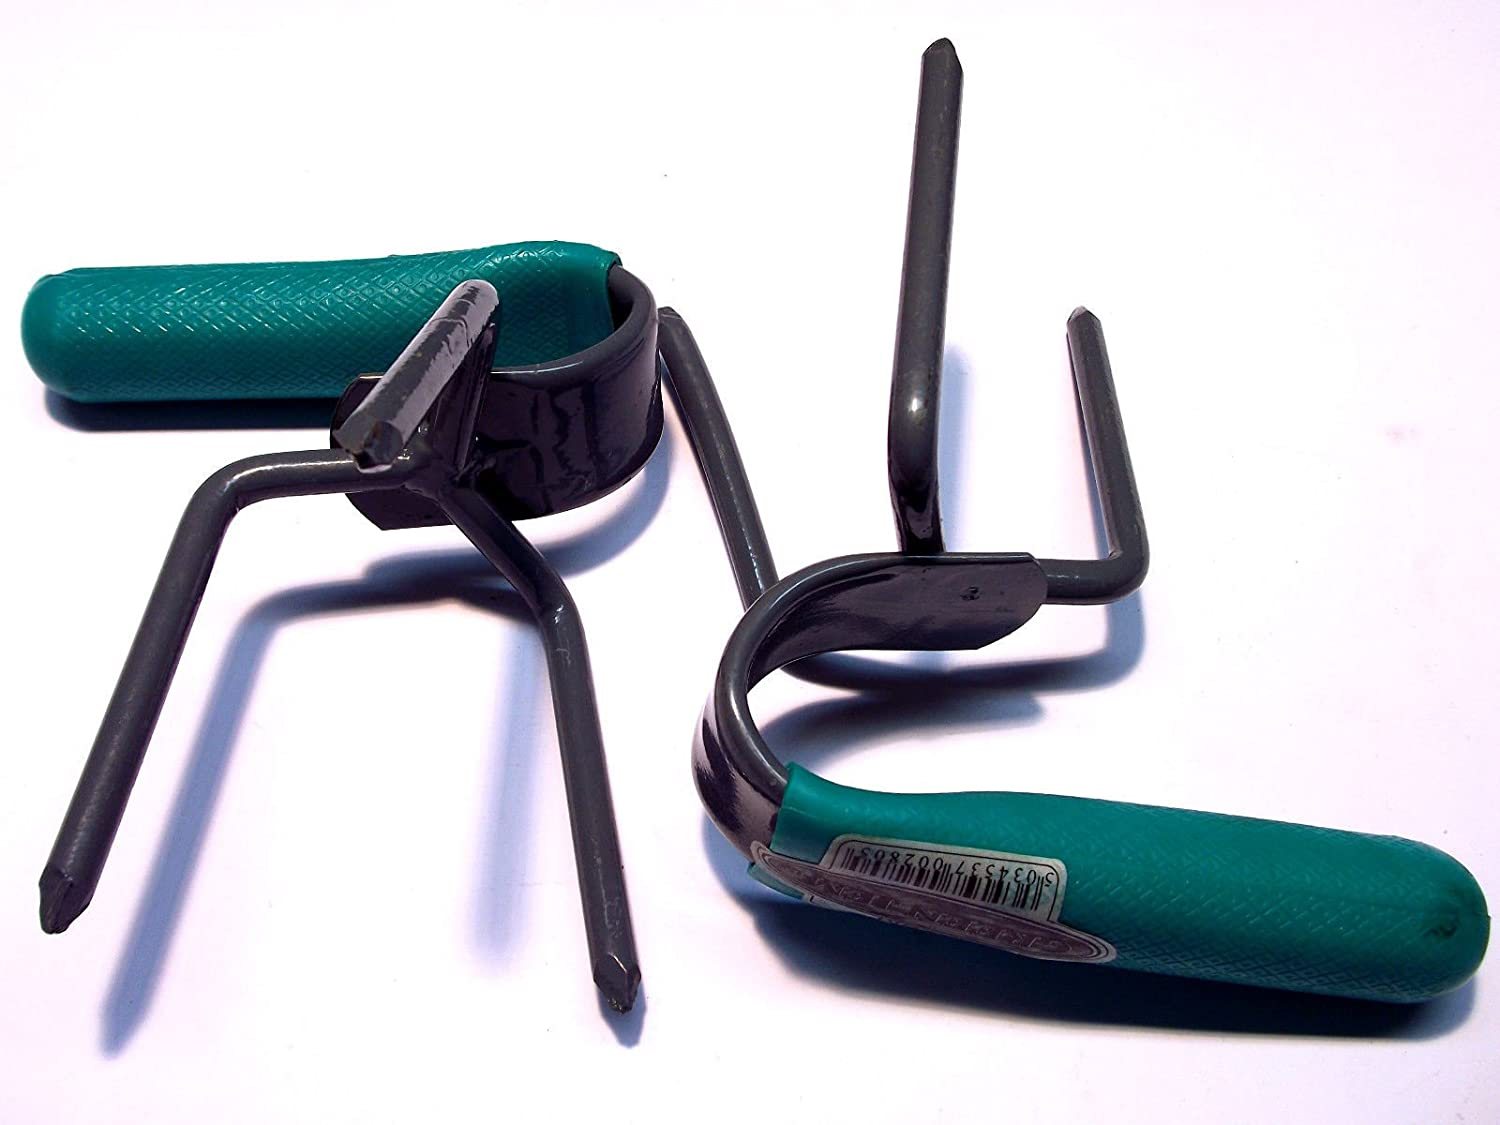 Green Jem Hand Held Rake / claw / Cultivator/ Weeder Set Of Two (2) GTSM Green Gem